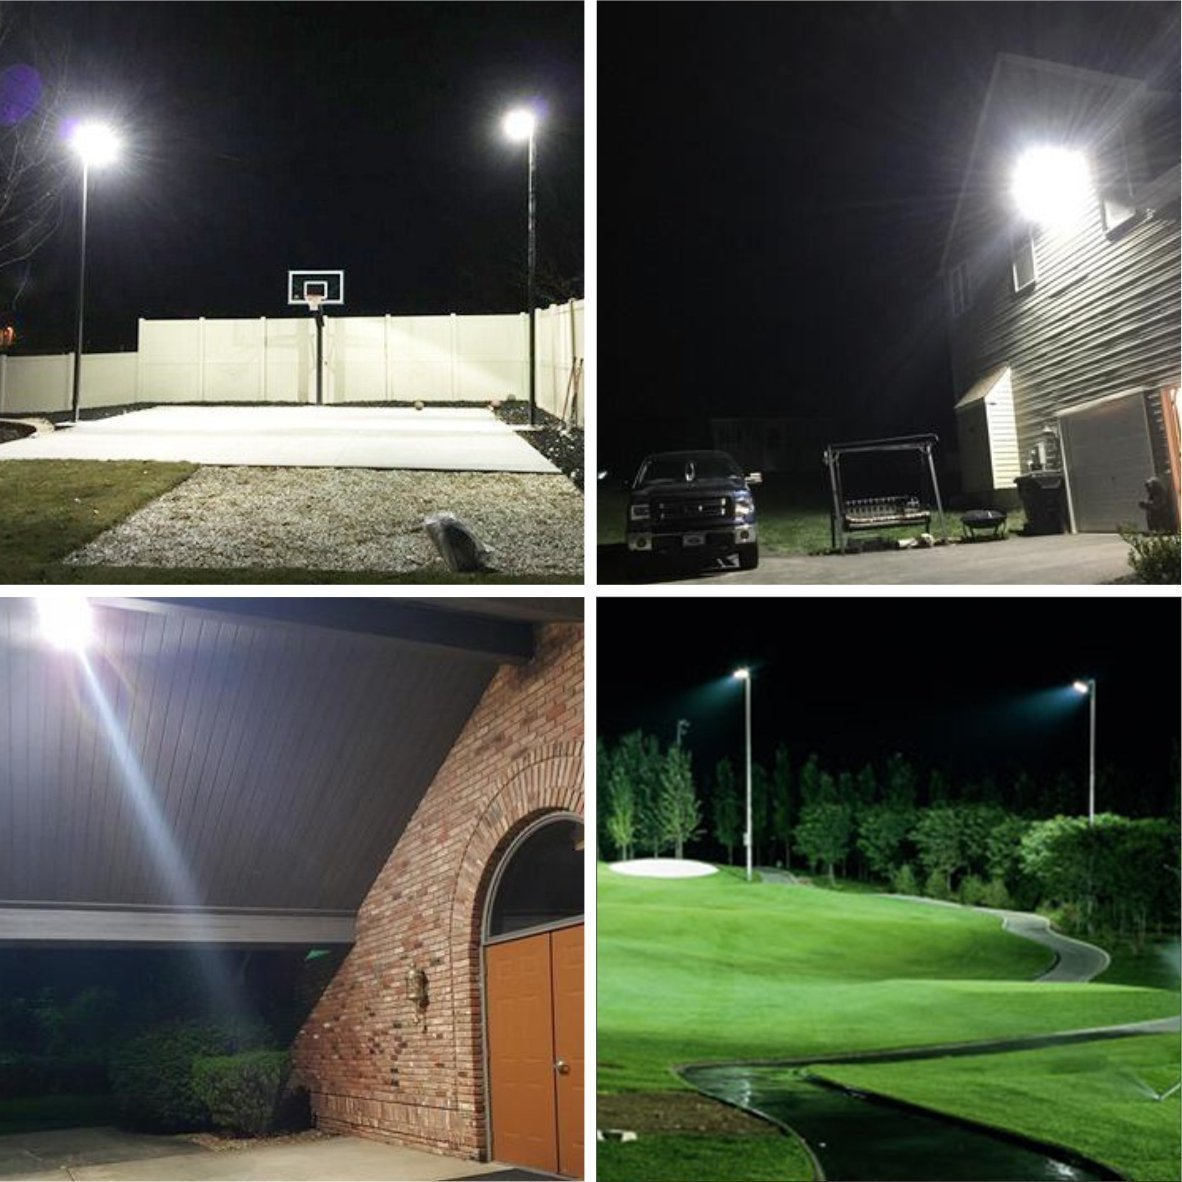 W-LITE 200W LED Flood Light, Super Bright 400 LED, 22000LM, Soft Daylight White, Full Power, 1600W Equivalent, Waterproof Outdoor Lighting, Security Lamps, 86-265V Input Voltage (200W) by W-LITE (Image #4)